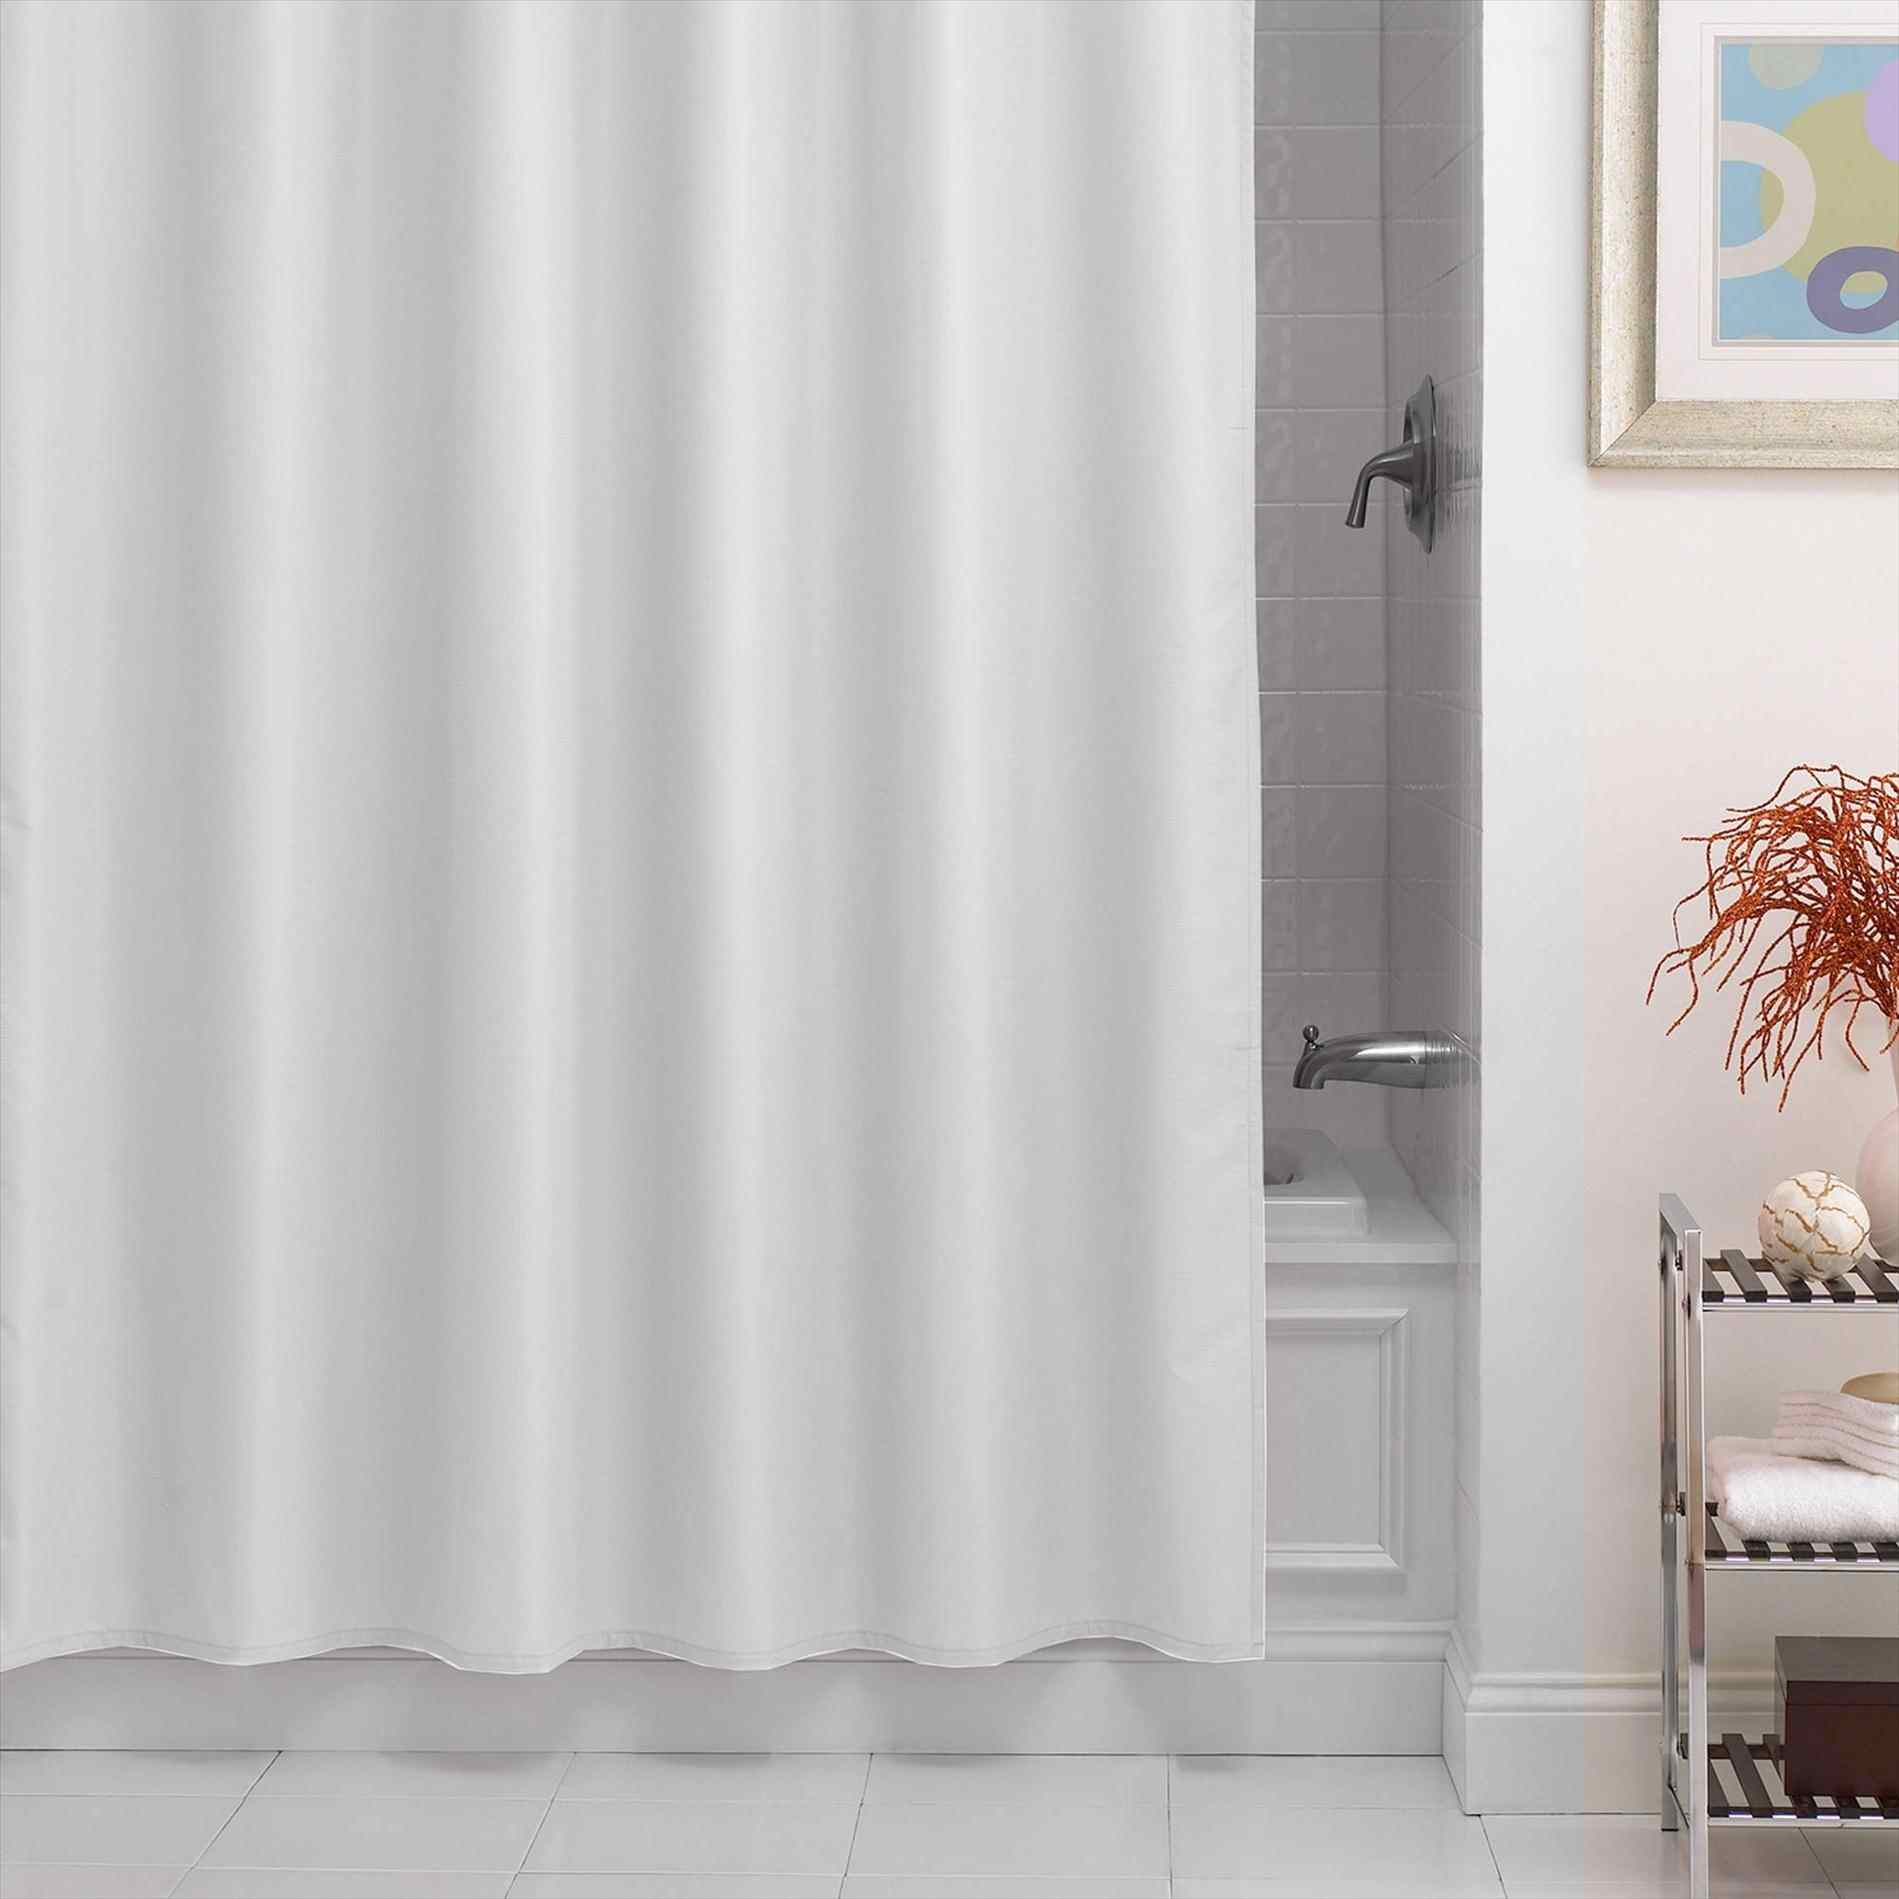 Curtains Lush Decor Lucia Inch Amazoncom White Fabric Shower throughout proportions 1899 X 1899